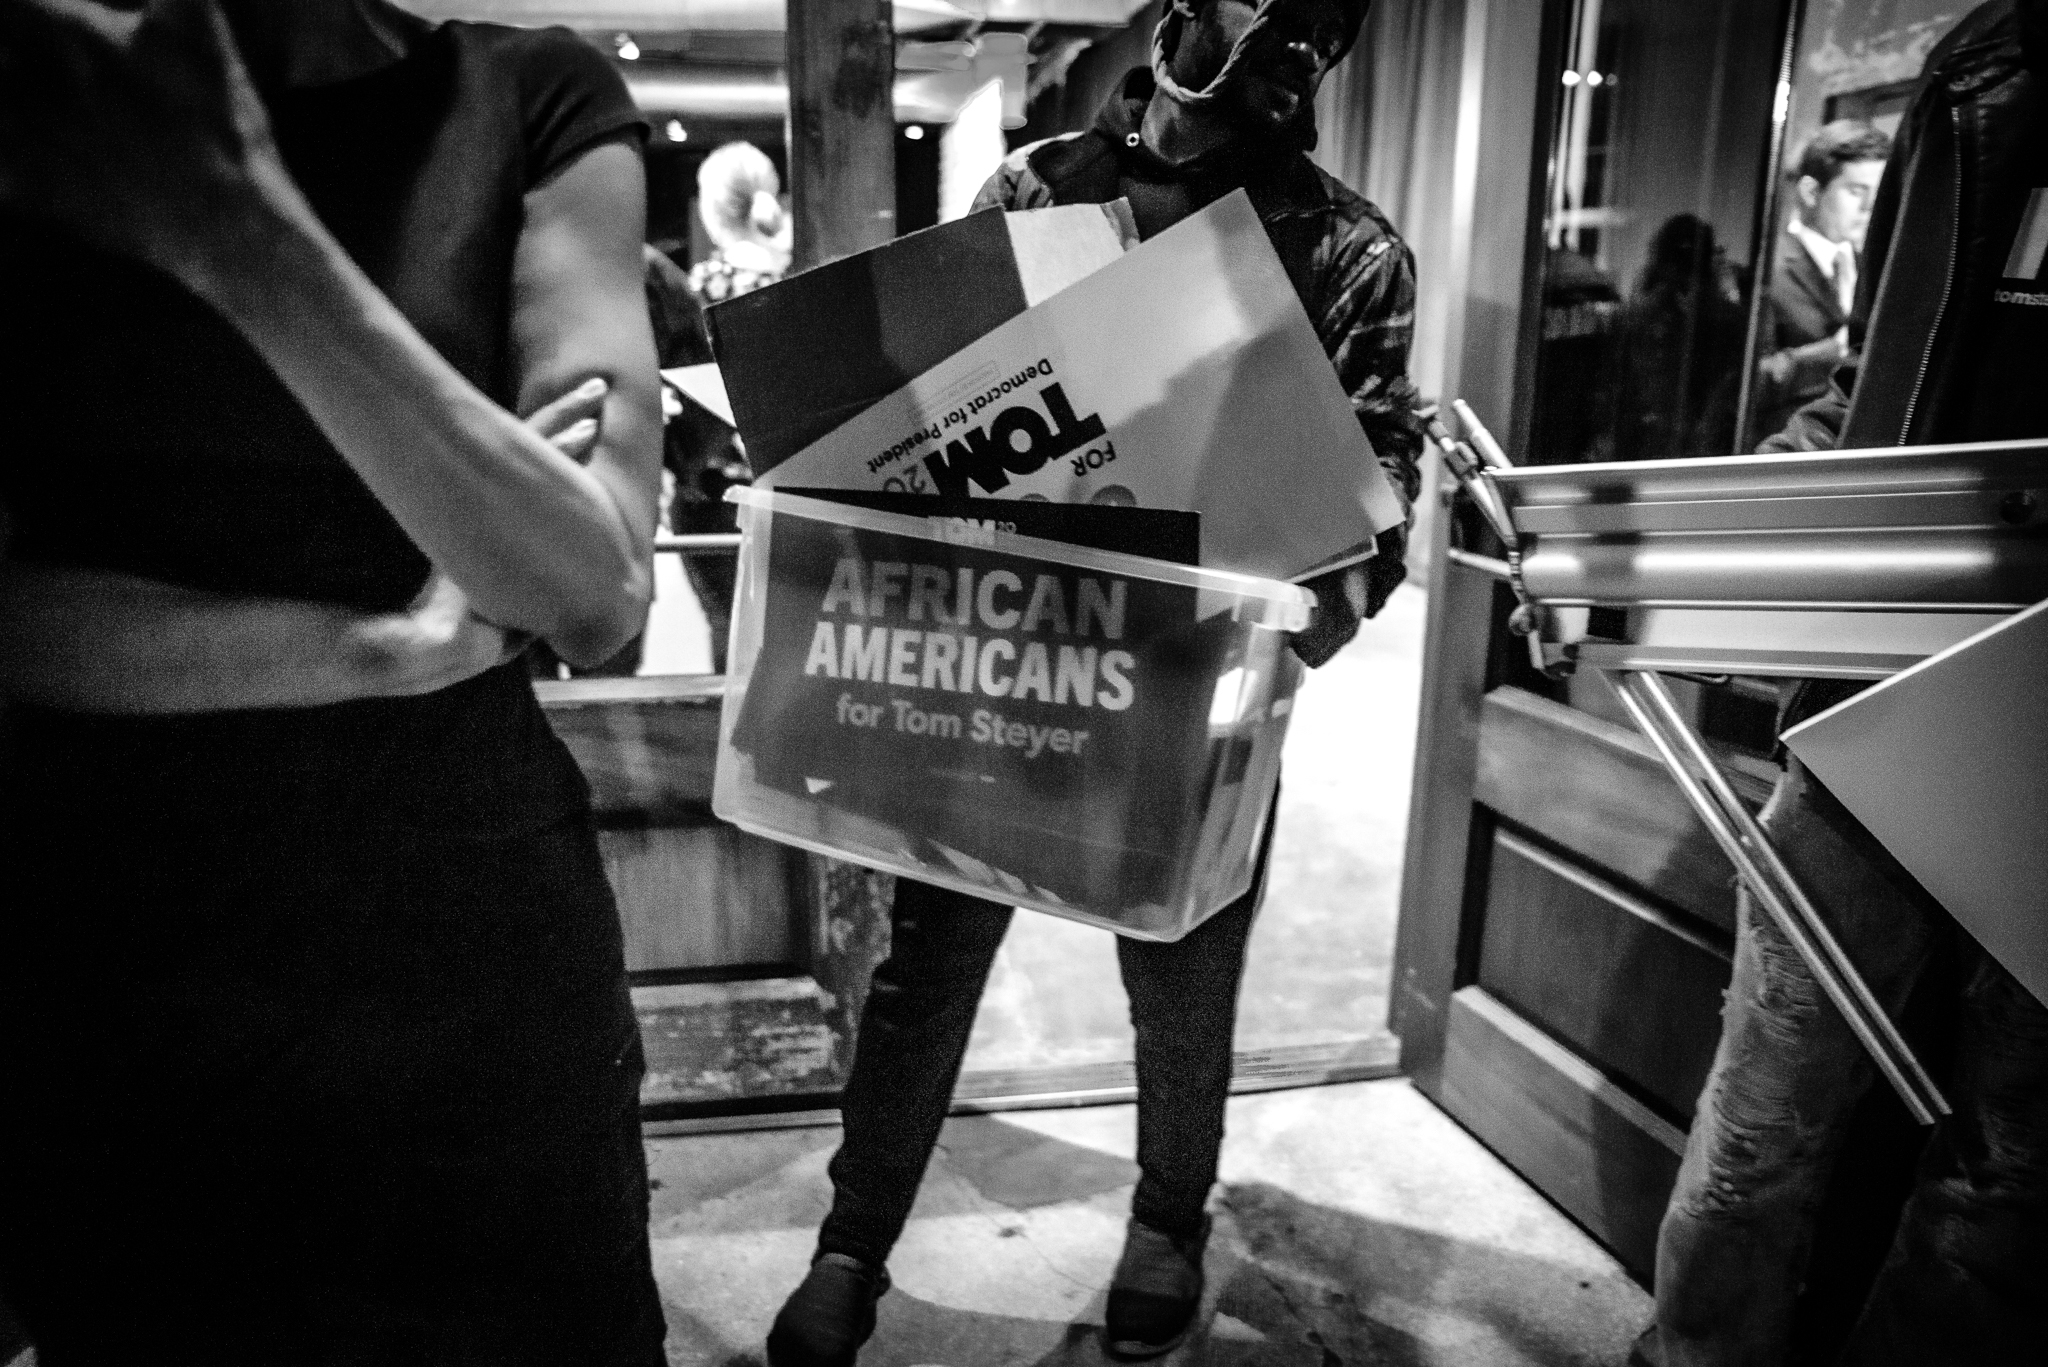 Tom Steyer's campaign team pack up their signs at a rally on primary night  in Columbia, South Carolina. February 29, 2020. Photo: Lance Monotone.